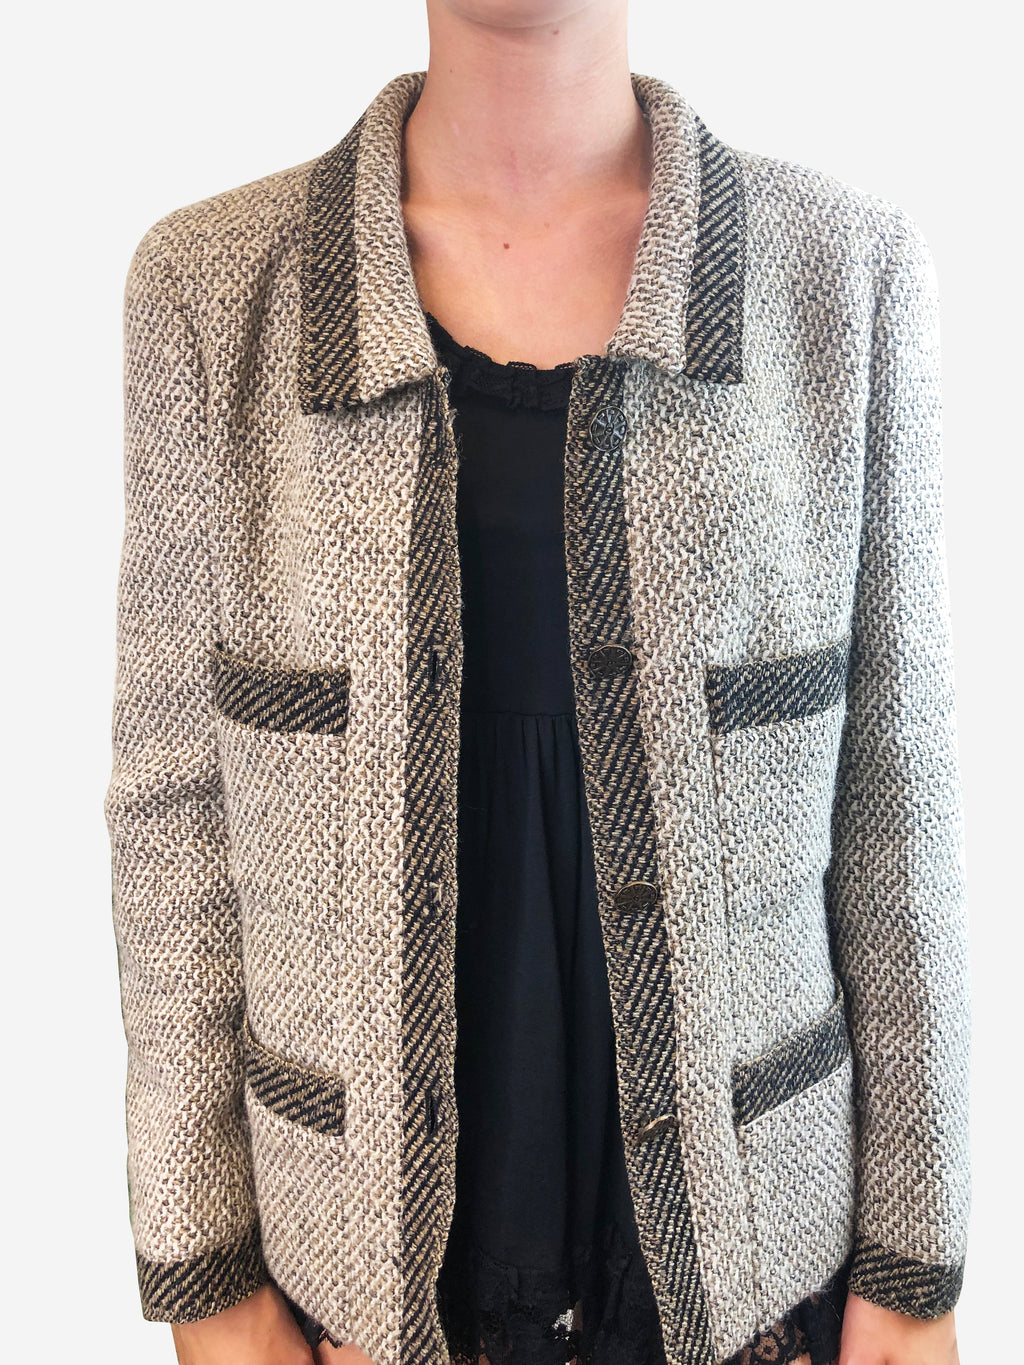 Chanel Brown Tweed Jacket Size 14 Chanel - Timpanys